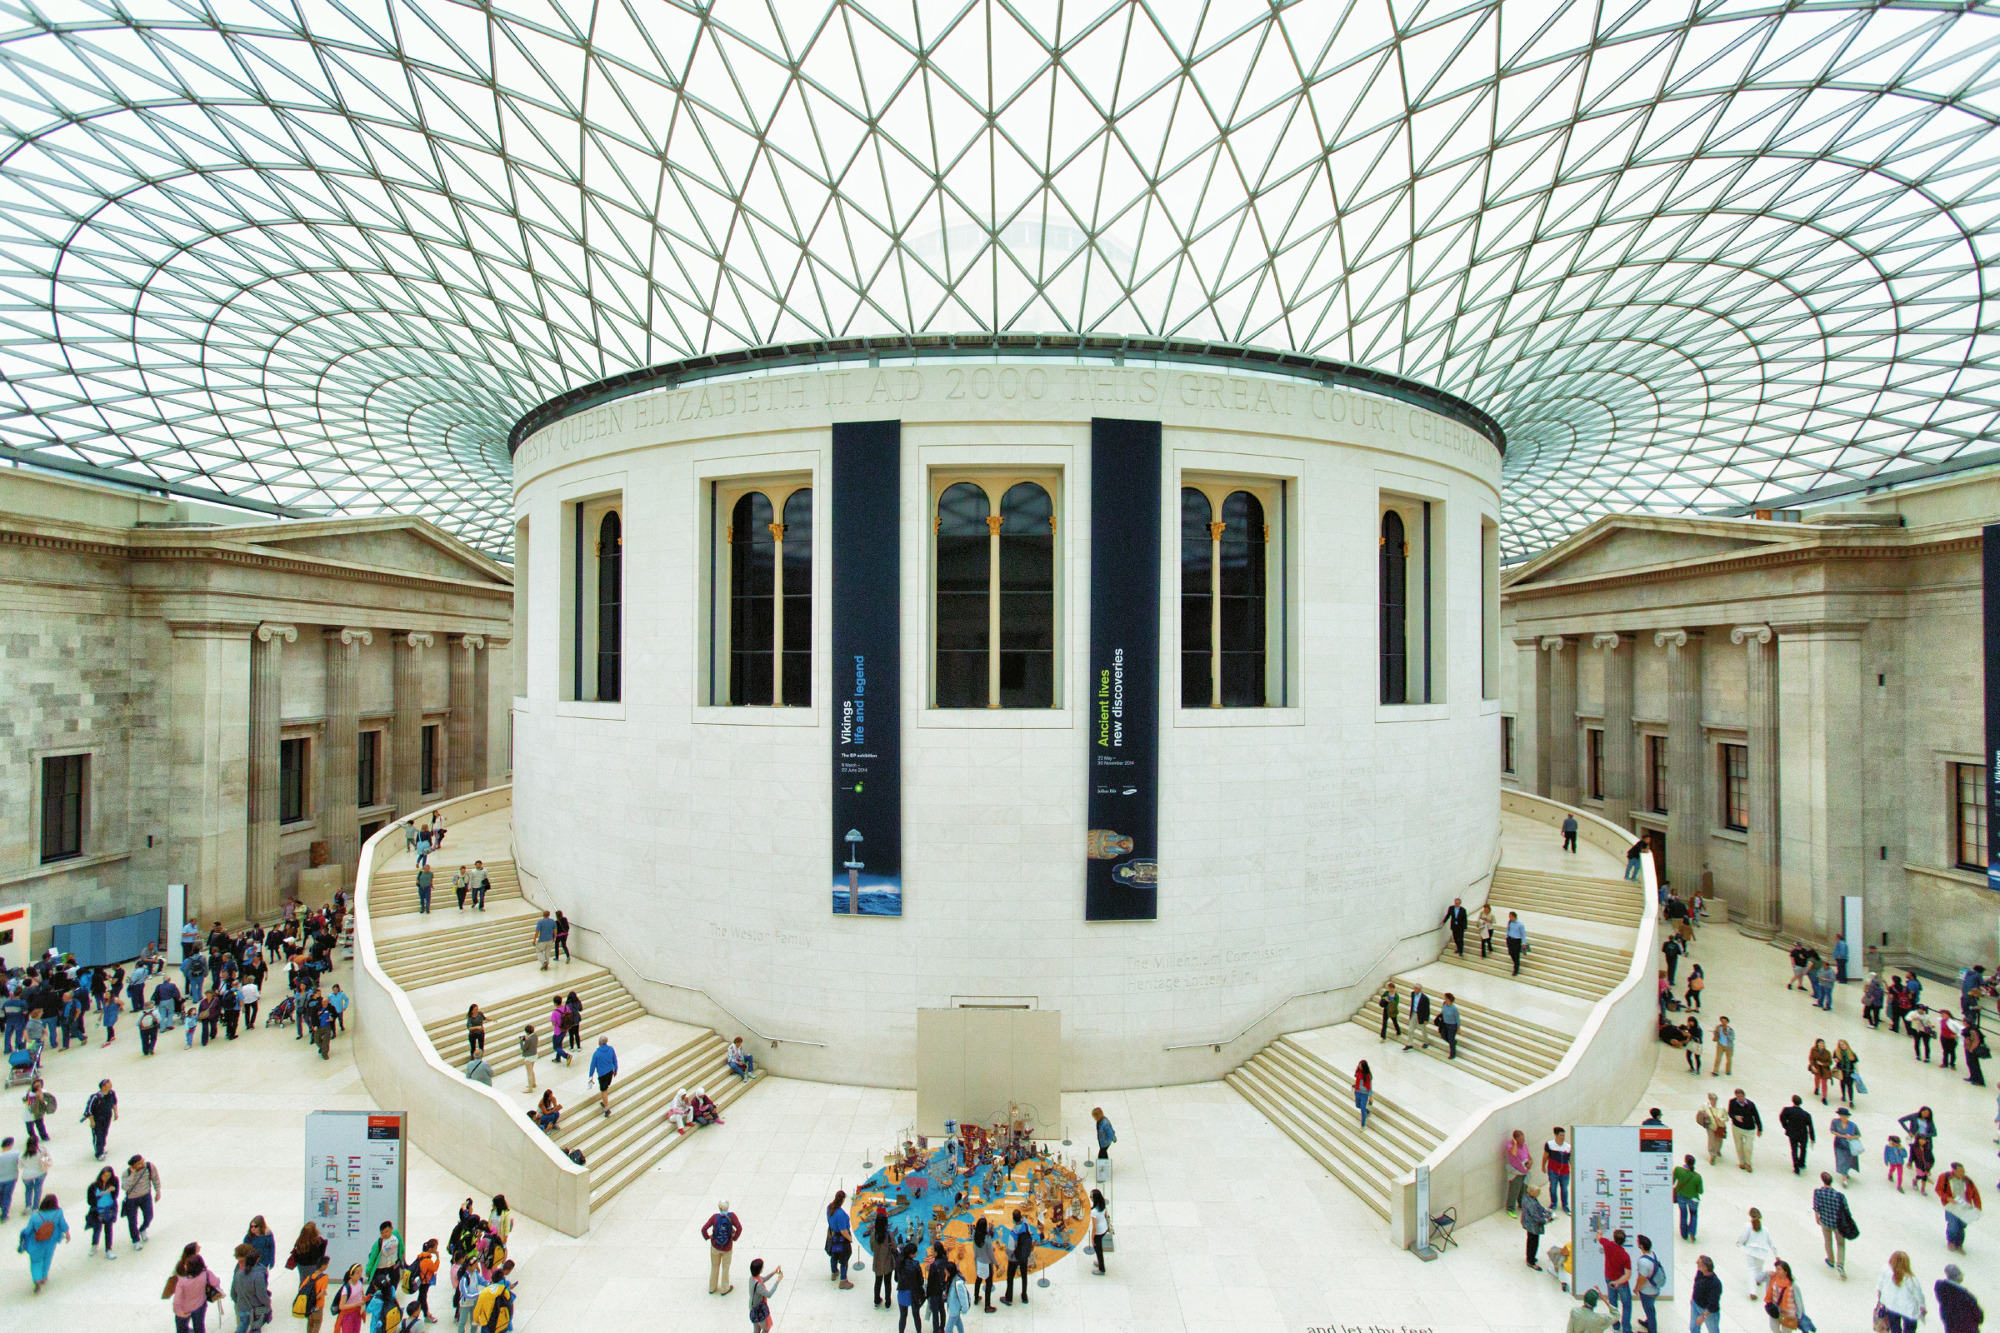 The interior of the British Museum in London.